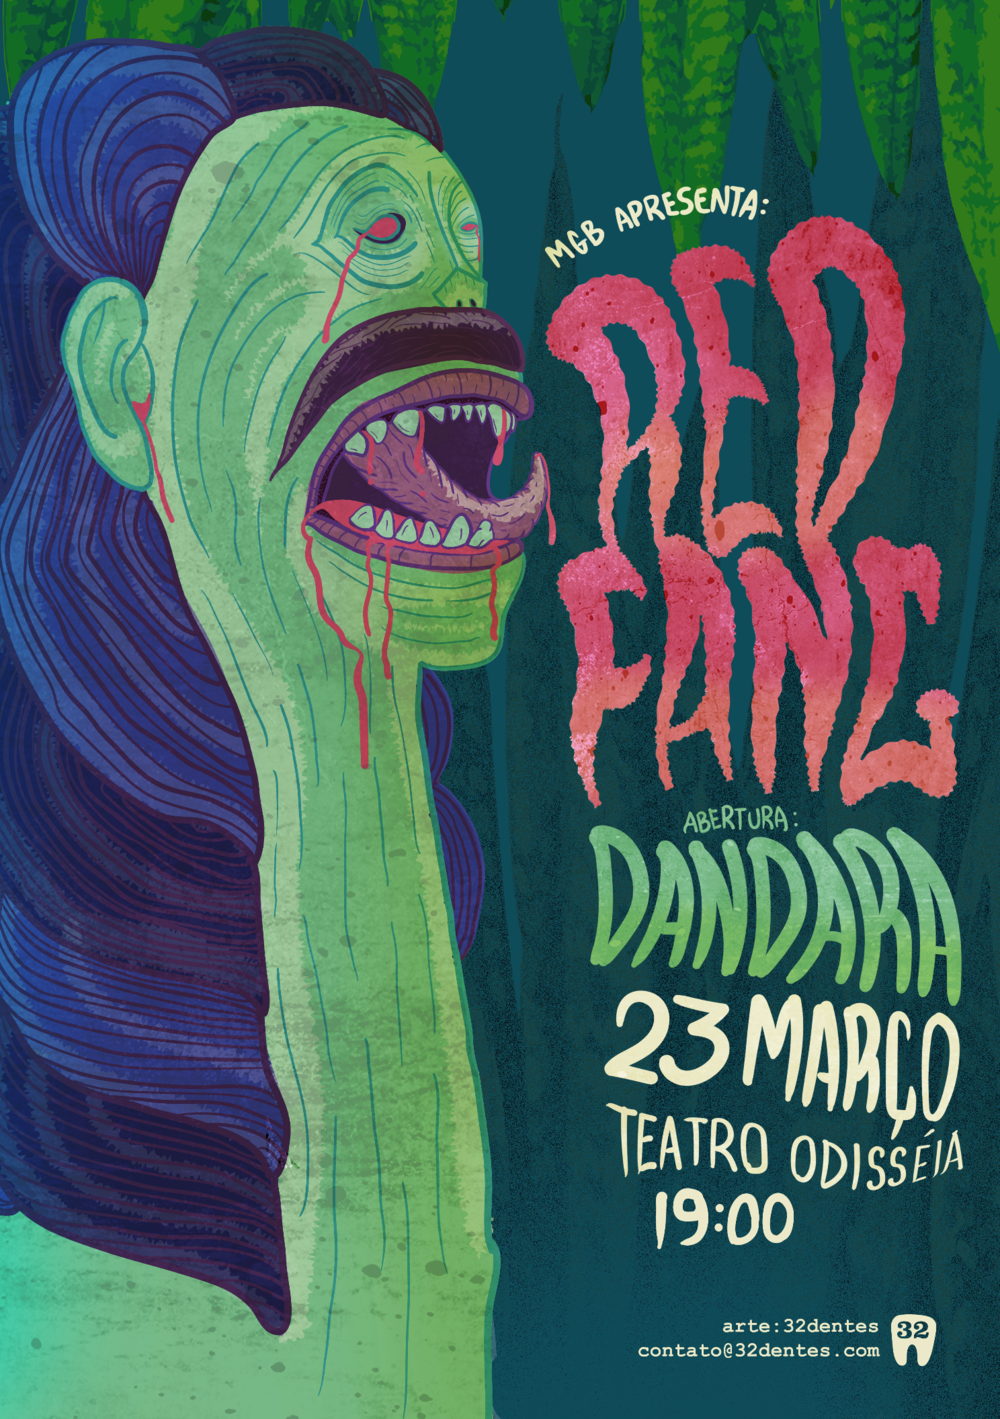 Poster art for the Red Fang concert in Brasil based on the carrancas. A true brazilian monster.